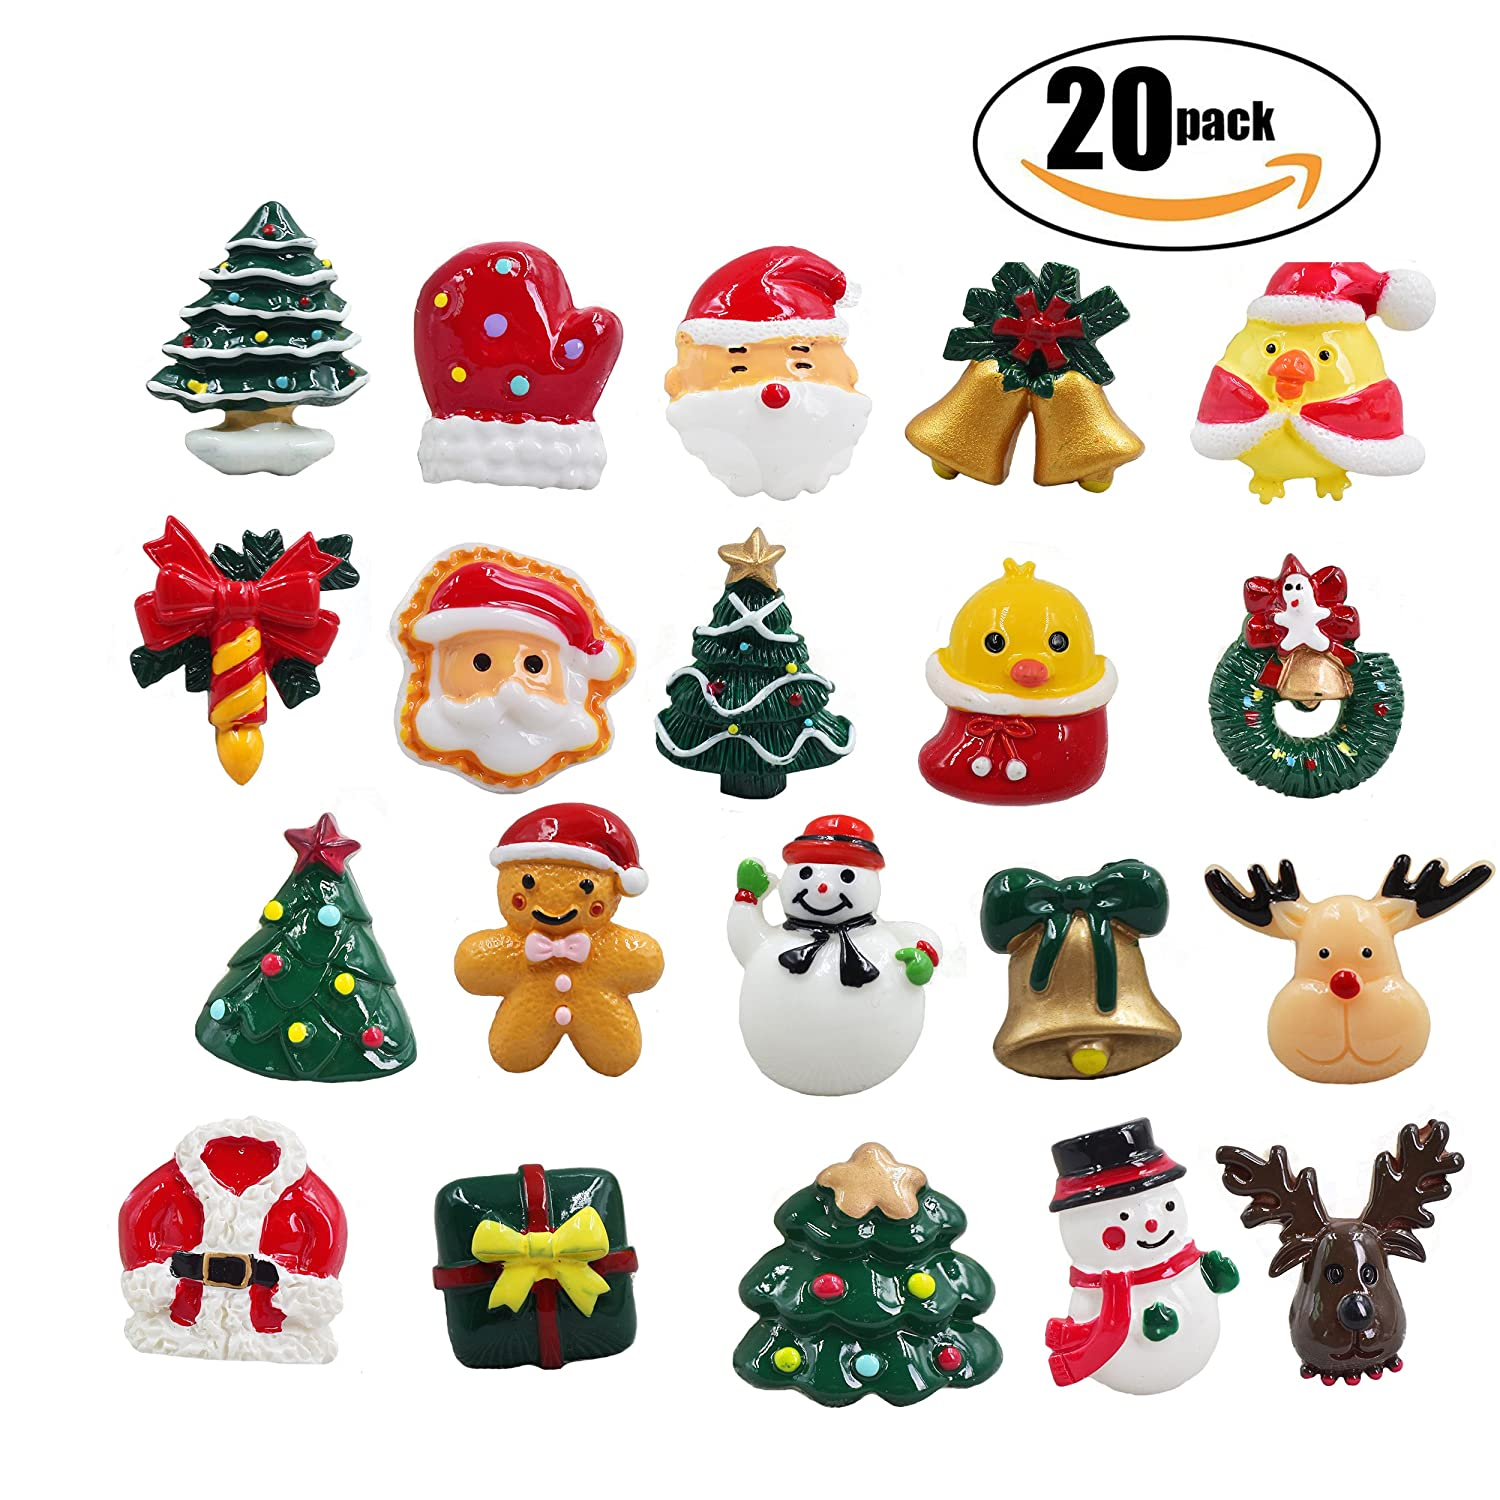 Amazoncom 20 Pcs Christmas Decorations Refrigerator Magnets Office Magnets Christmas